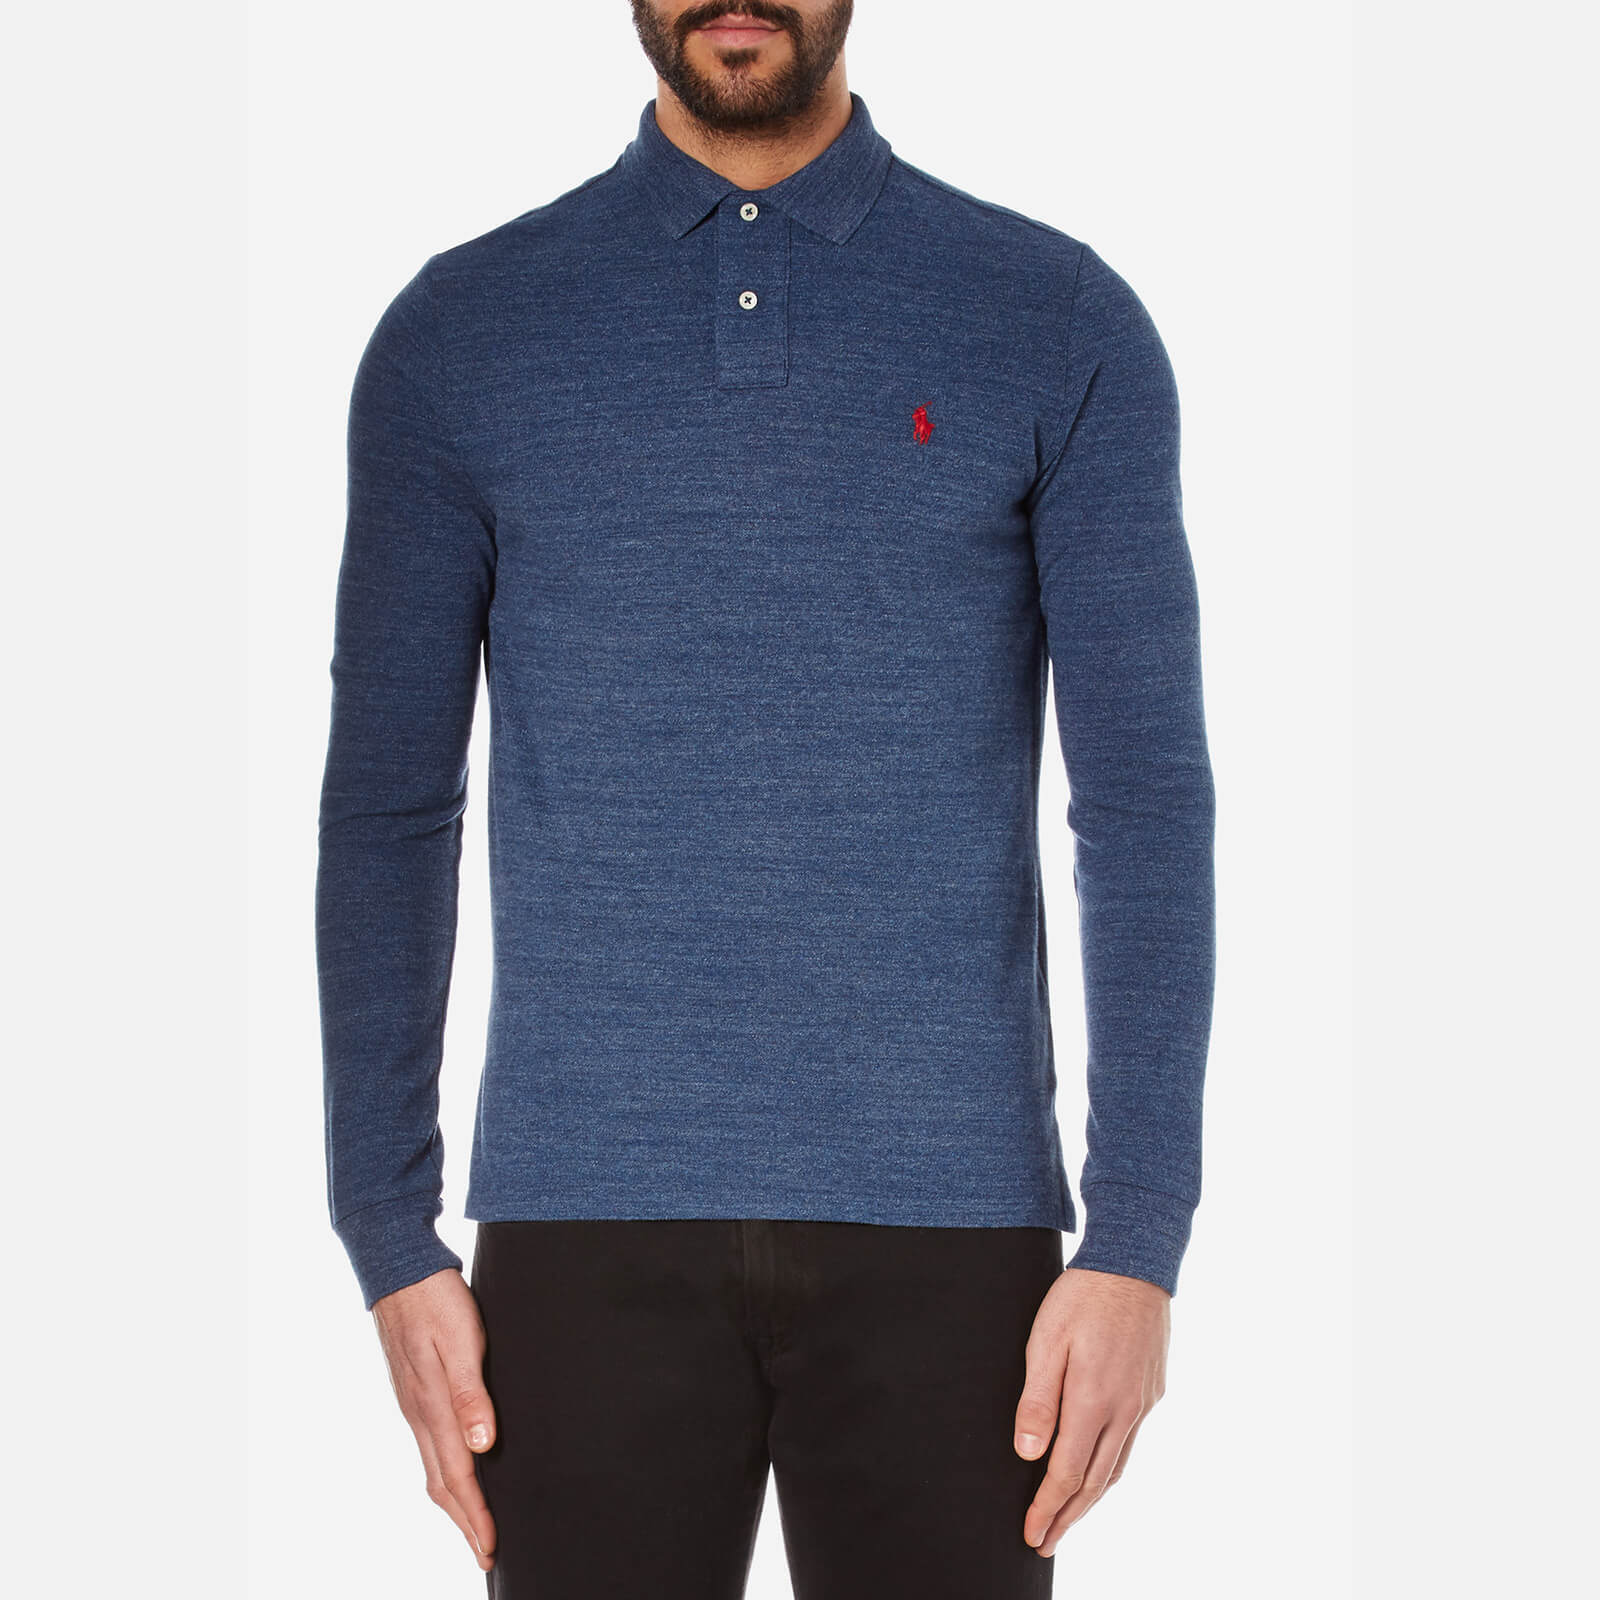 8fd4a2741 Polo Ralph Lauren Men s Custom Fit Long Sleeve Polo Shirt - Classic Royal  Heather - Free UK Delivery over £50